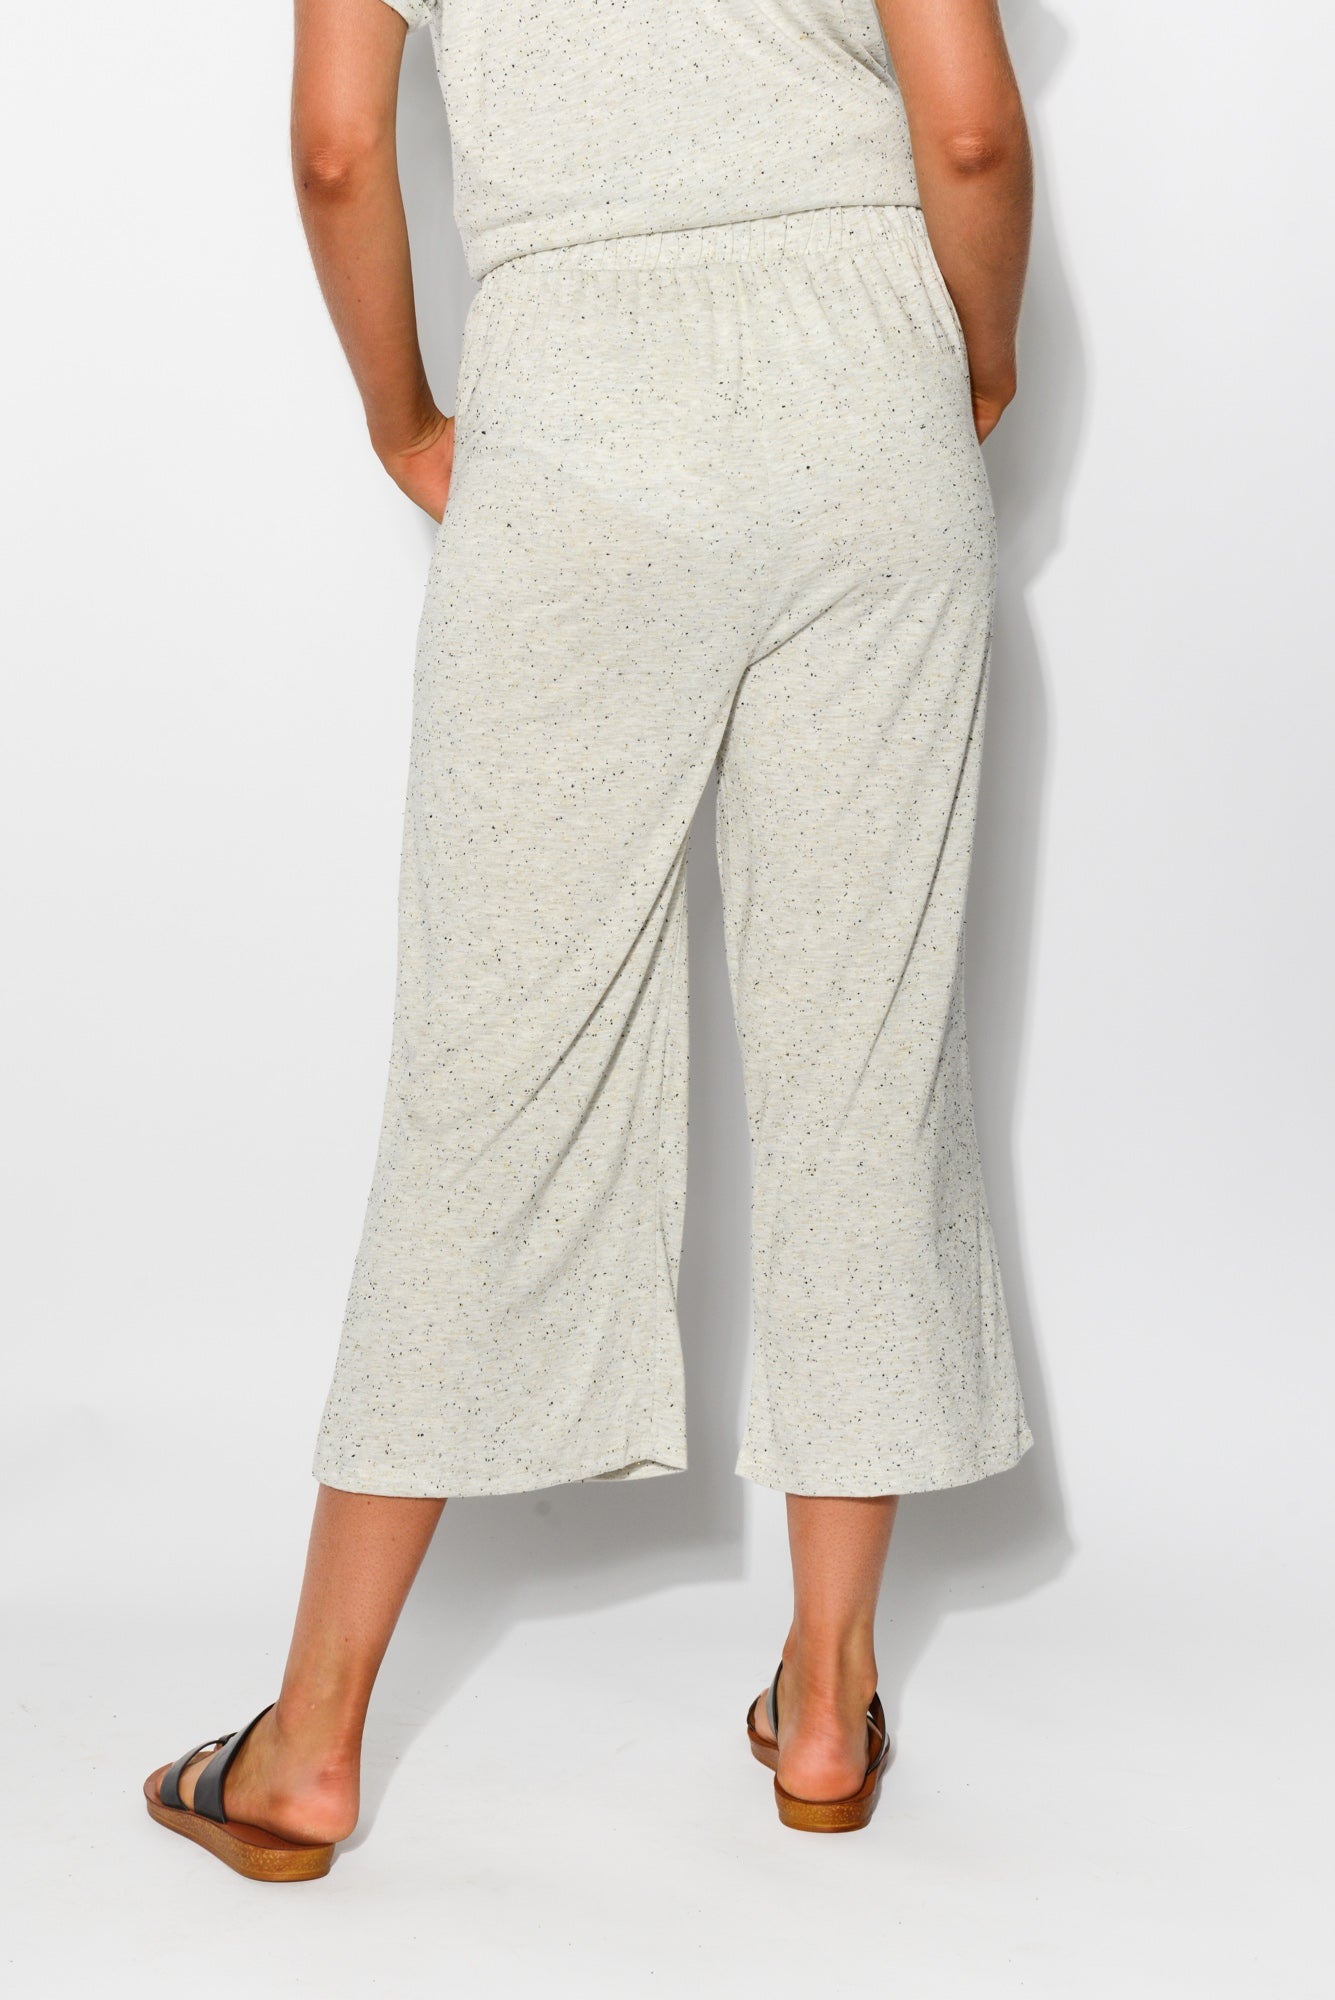 Dublin Grey Cropped Pant